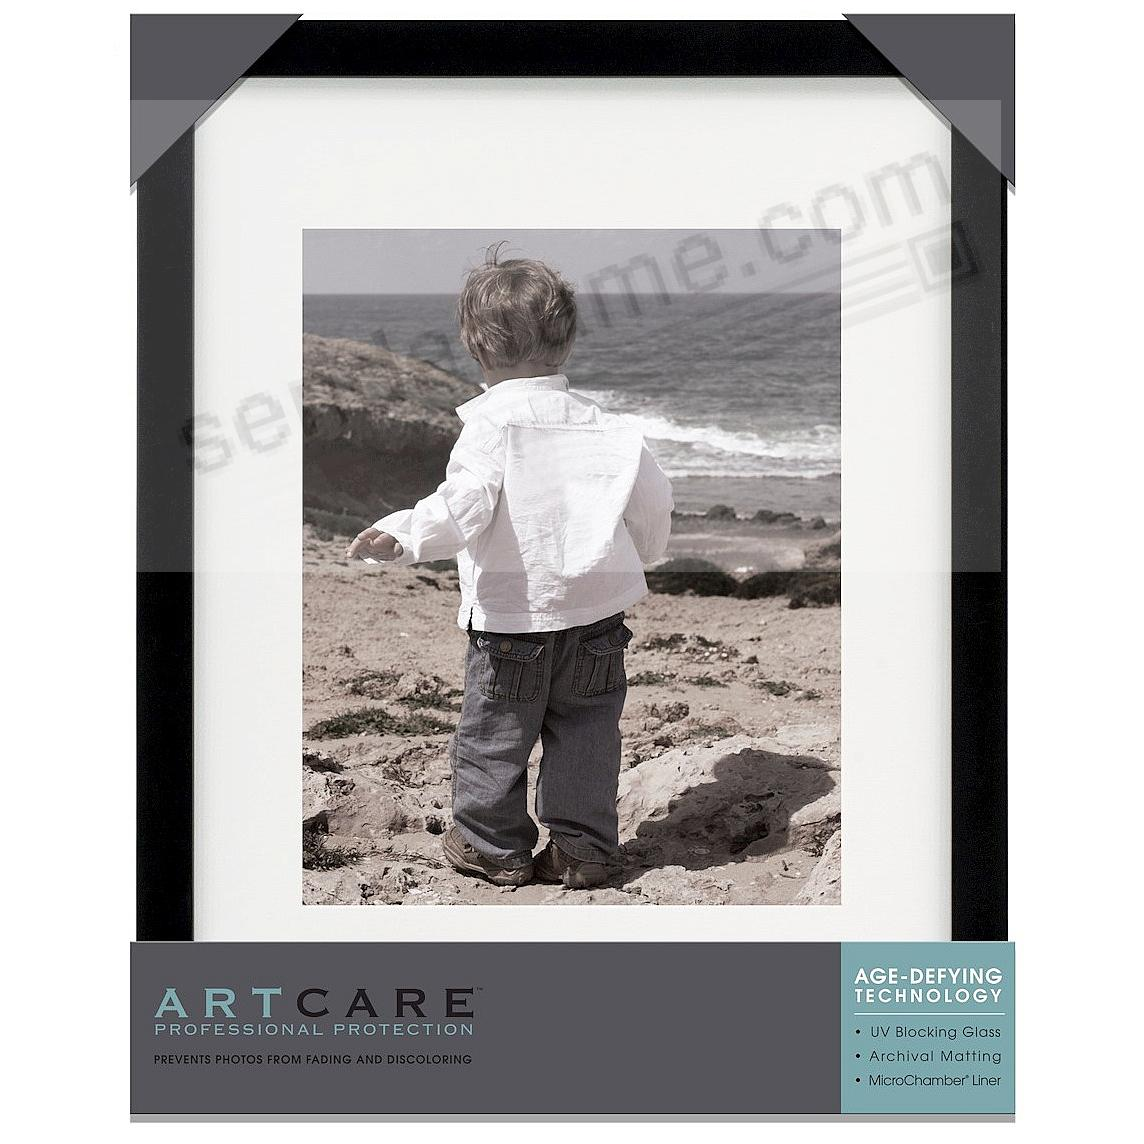 Matte-Black TRIBECA archival matted wood frame 11x14/8x10 by ARTCARE®